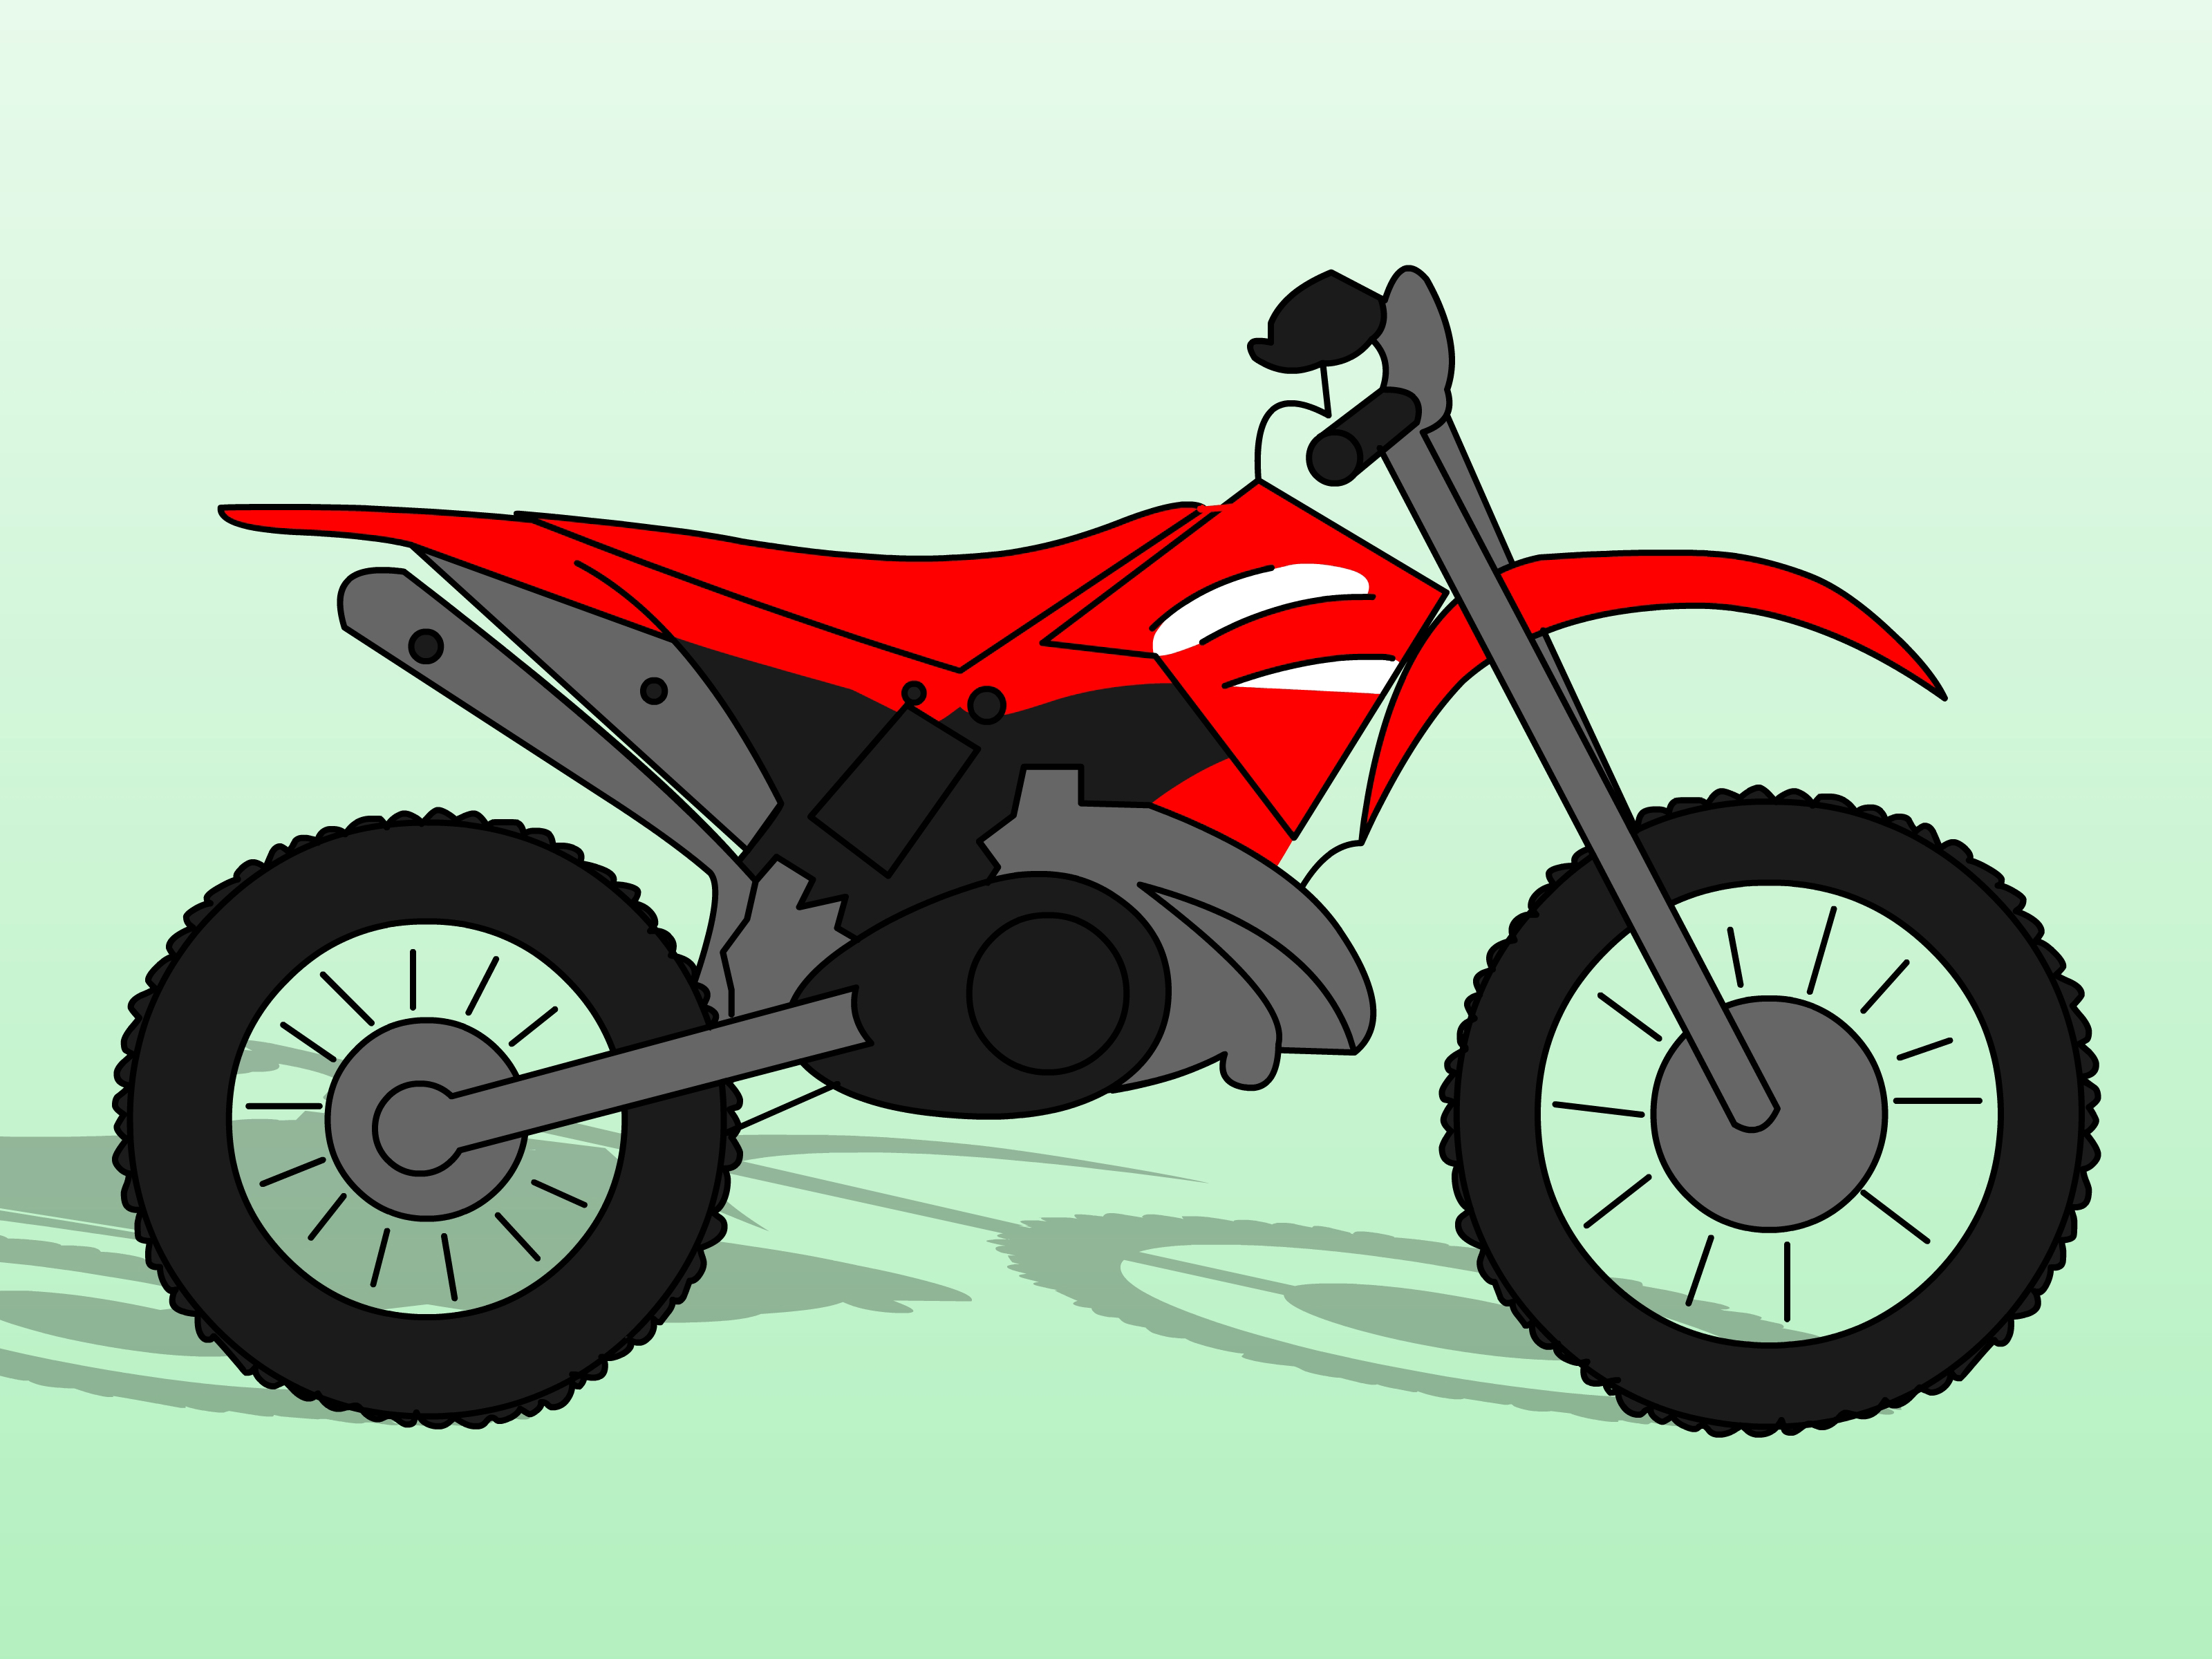 Motorcycle clipart simple. Easy bike drawing at